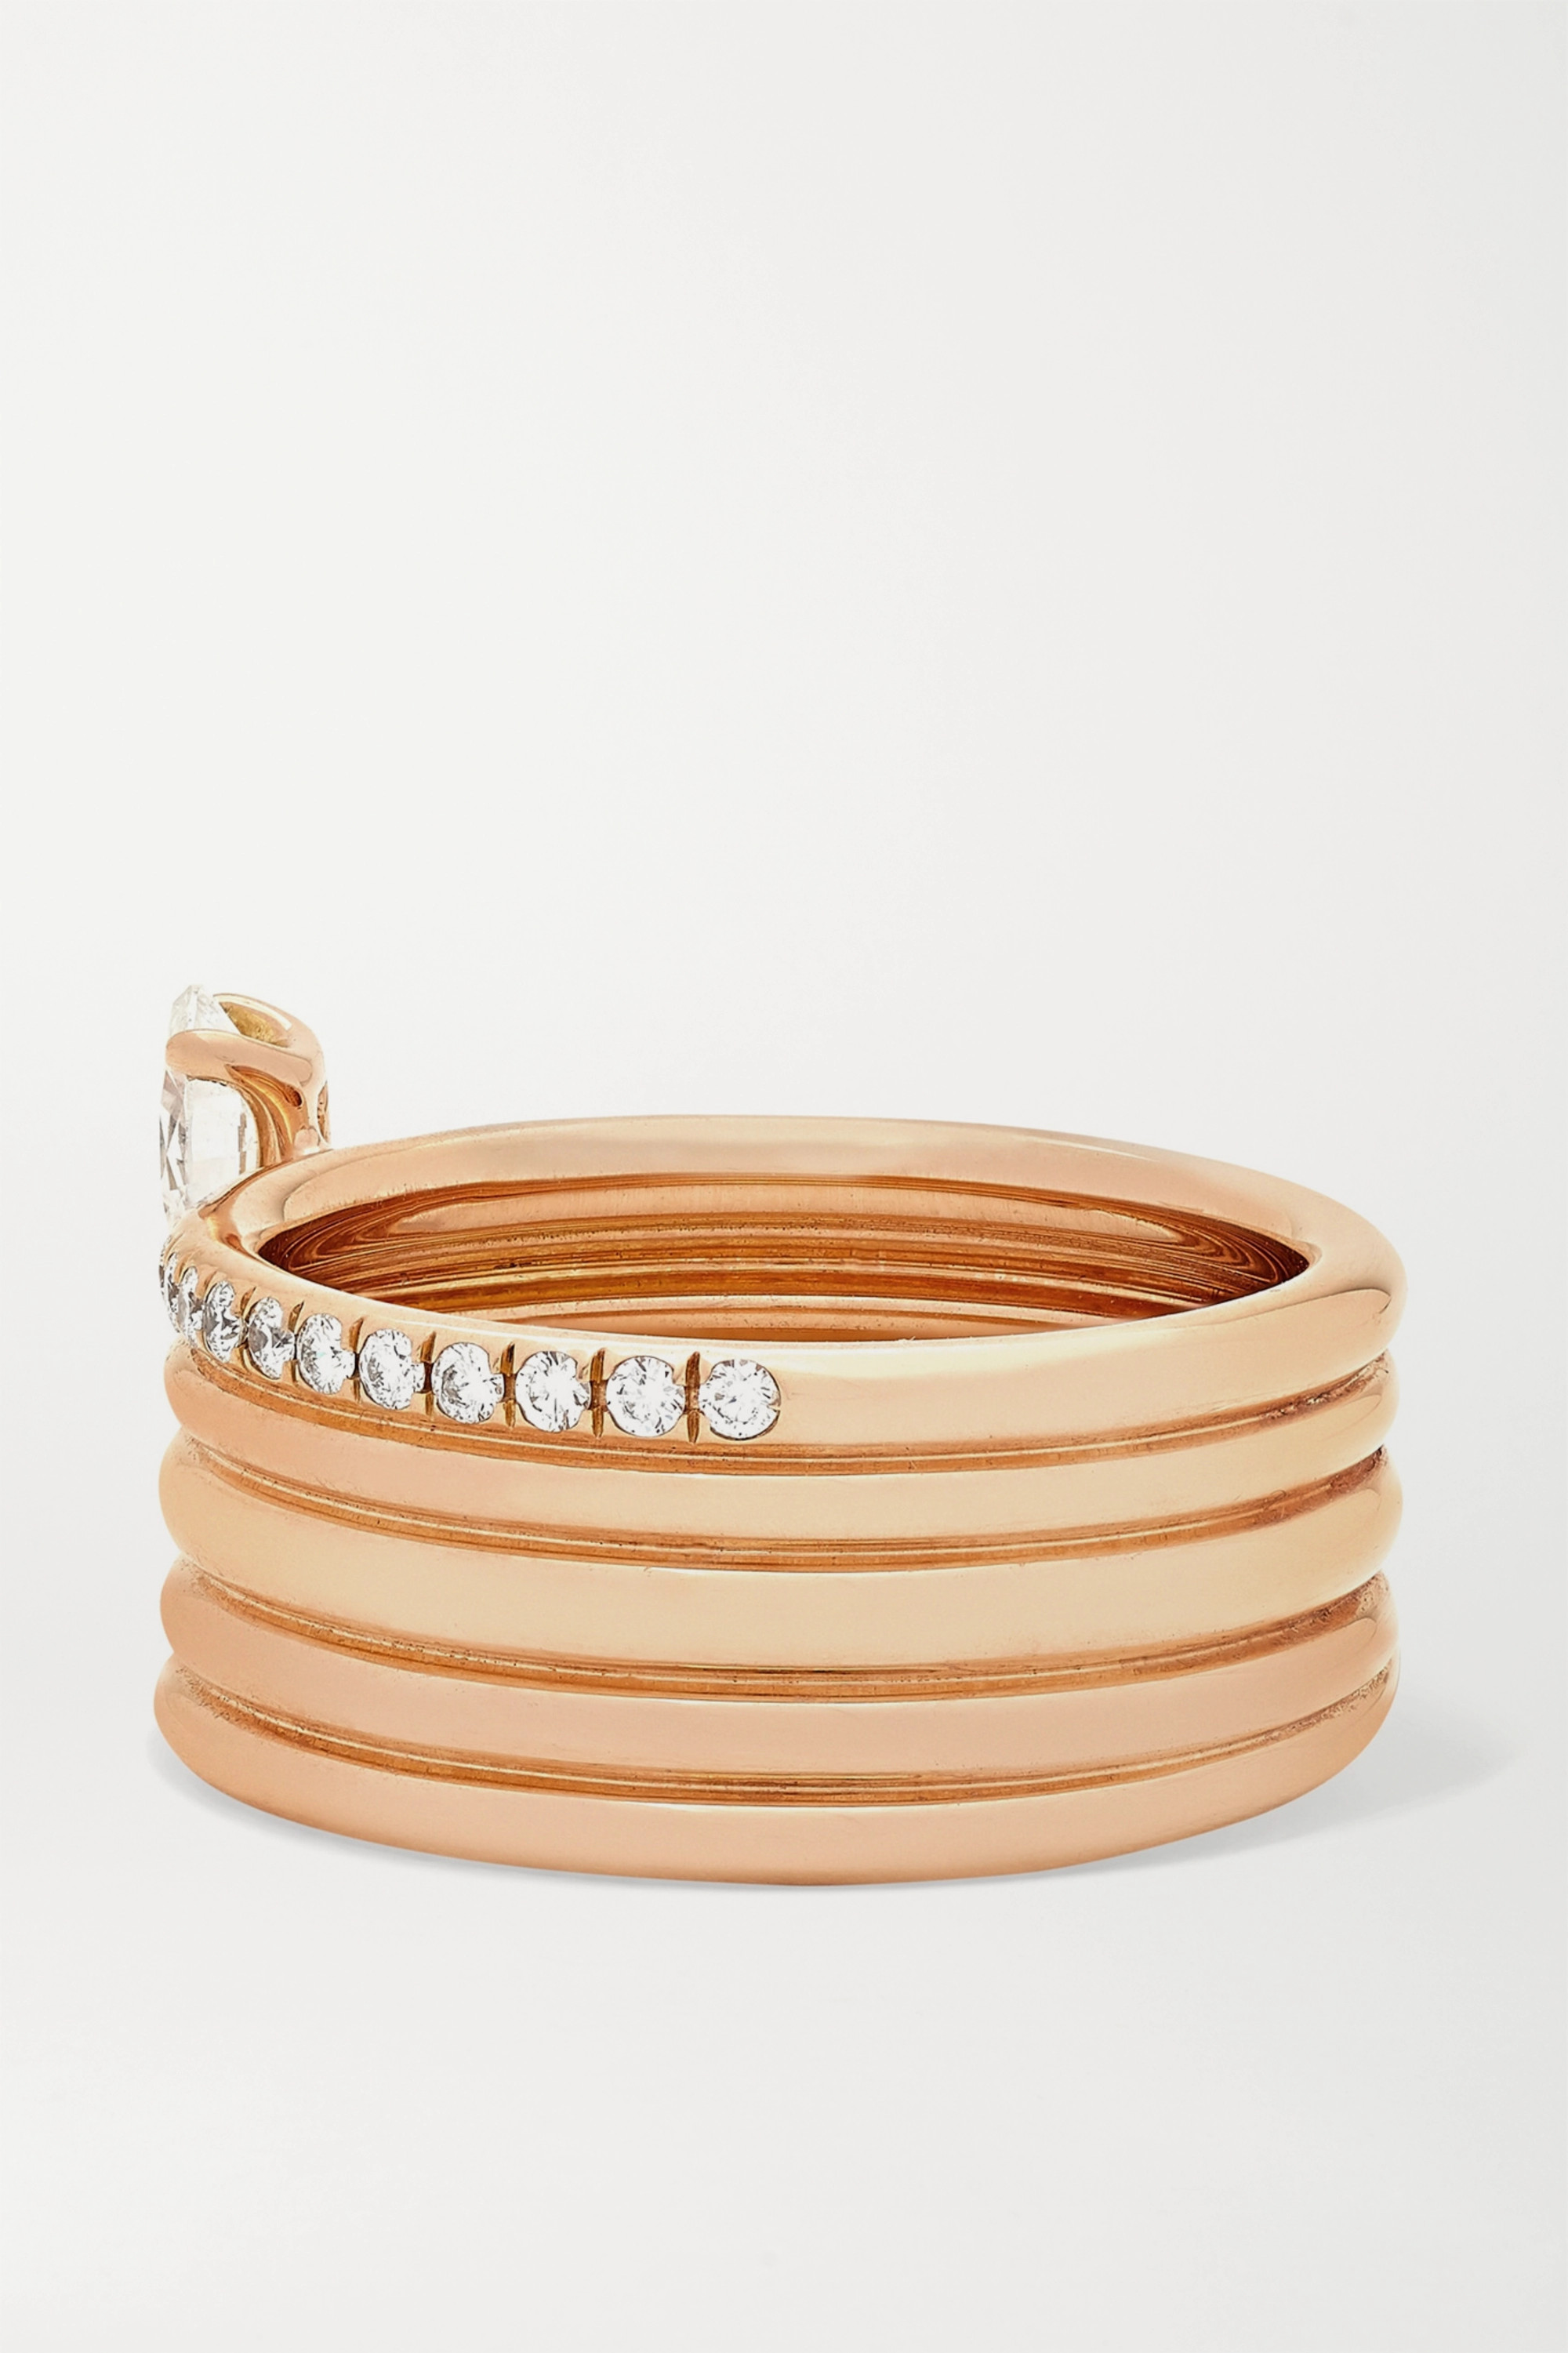 Repossi Blast 18-karat rose gold diamond ring